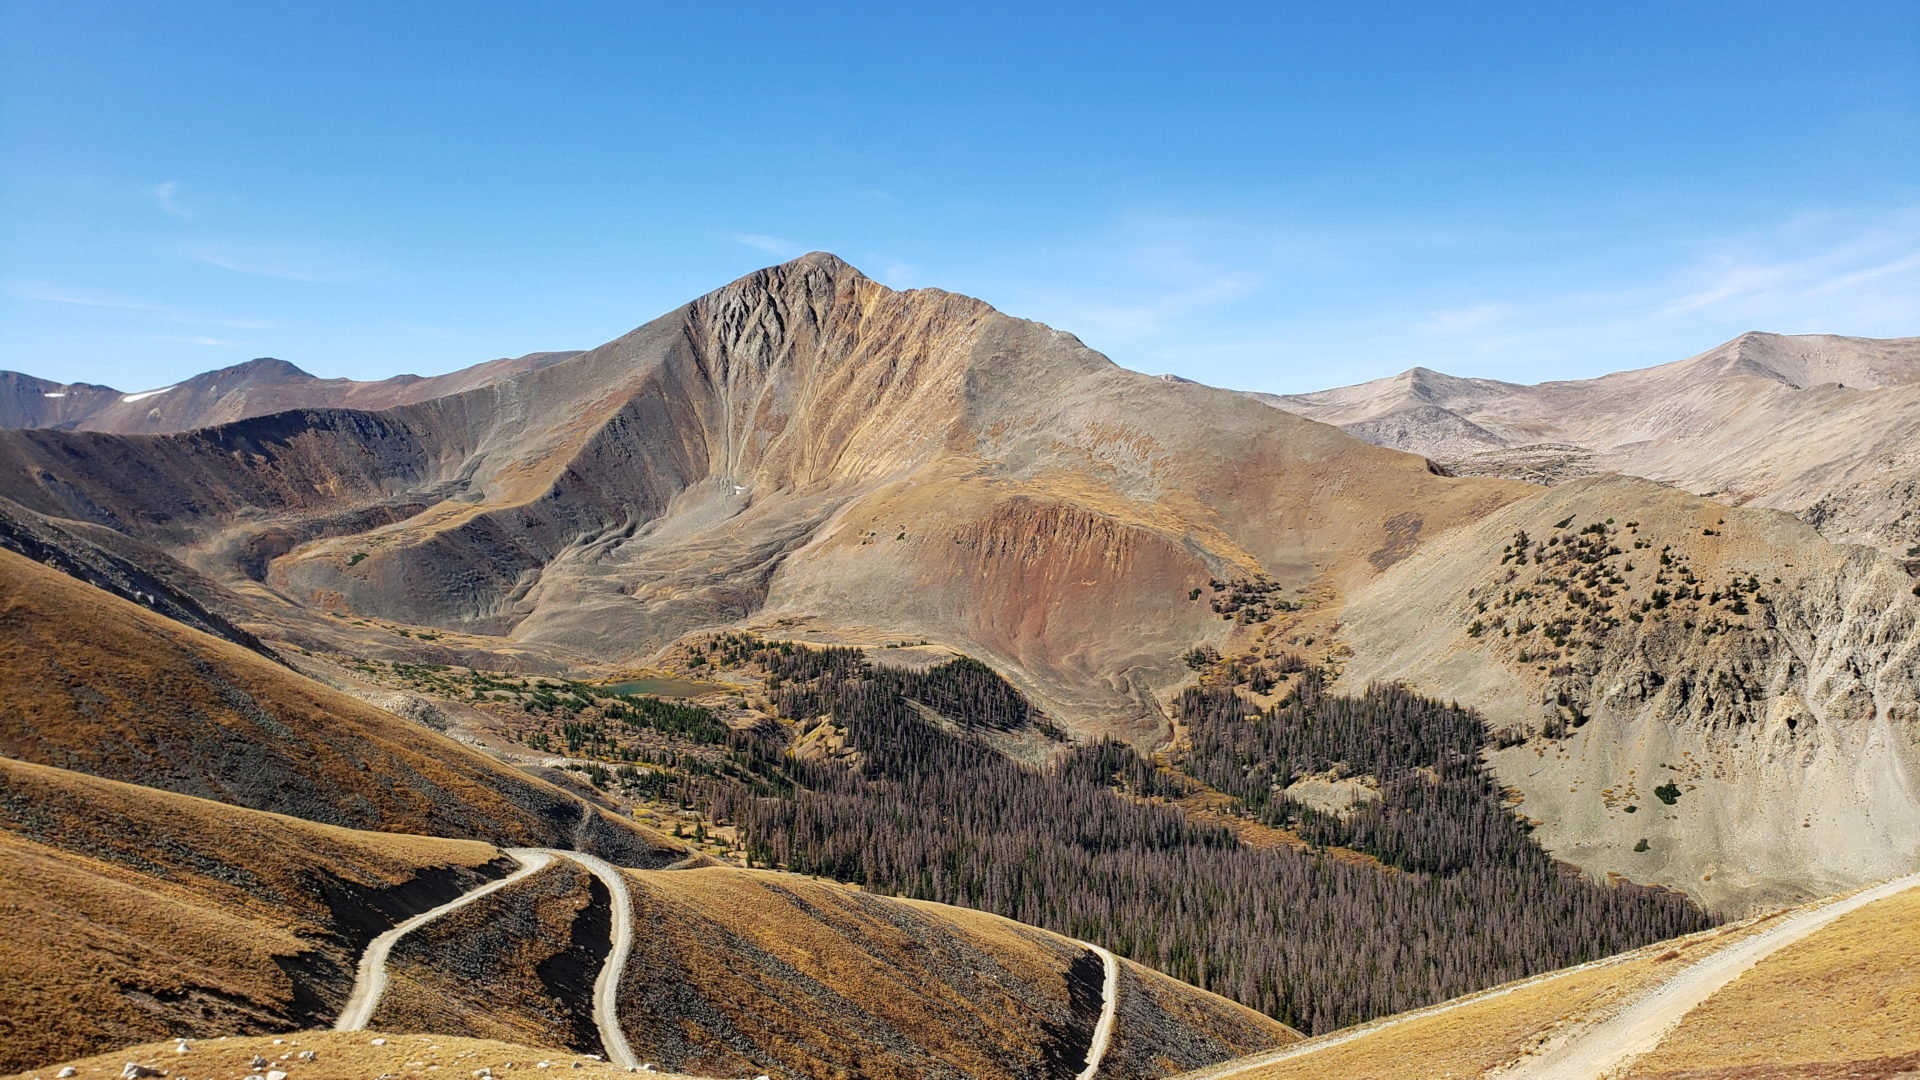 Permalink to: Mt Antero (14,269′) and Mt White (13,667′)